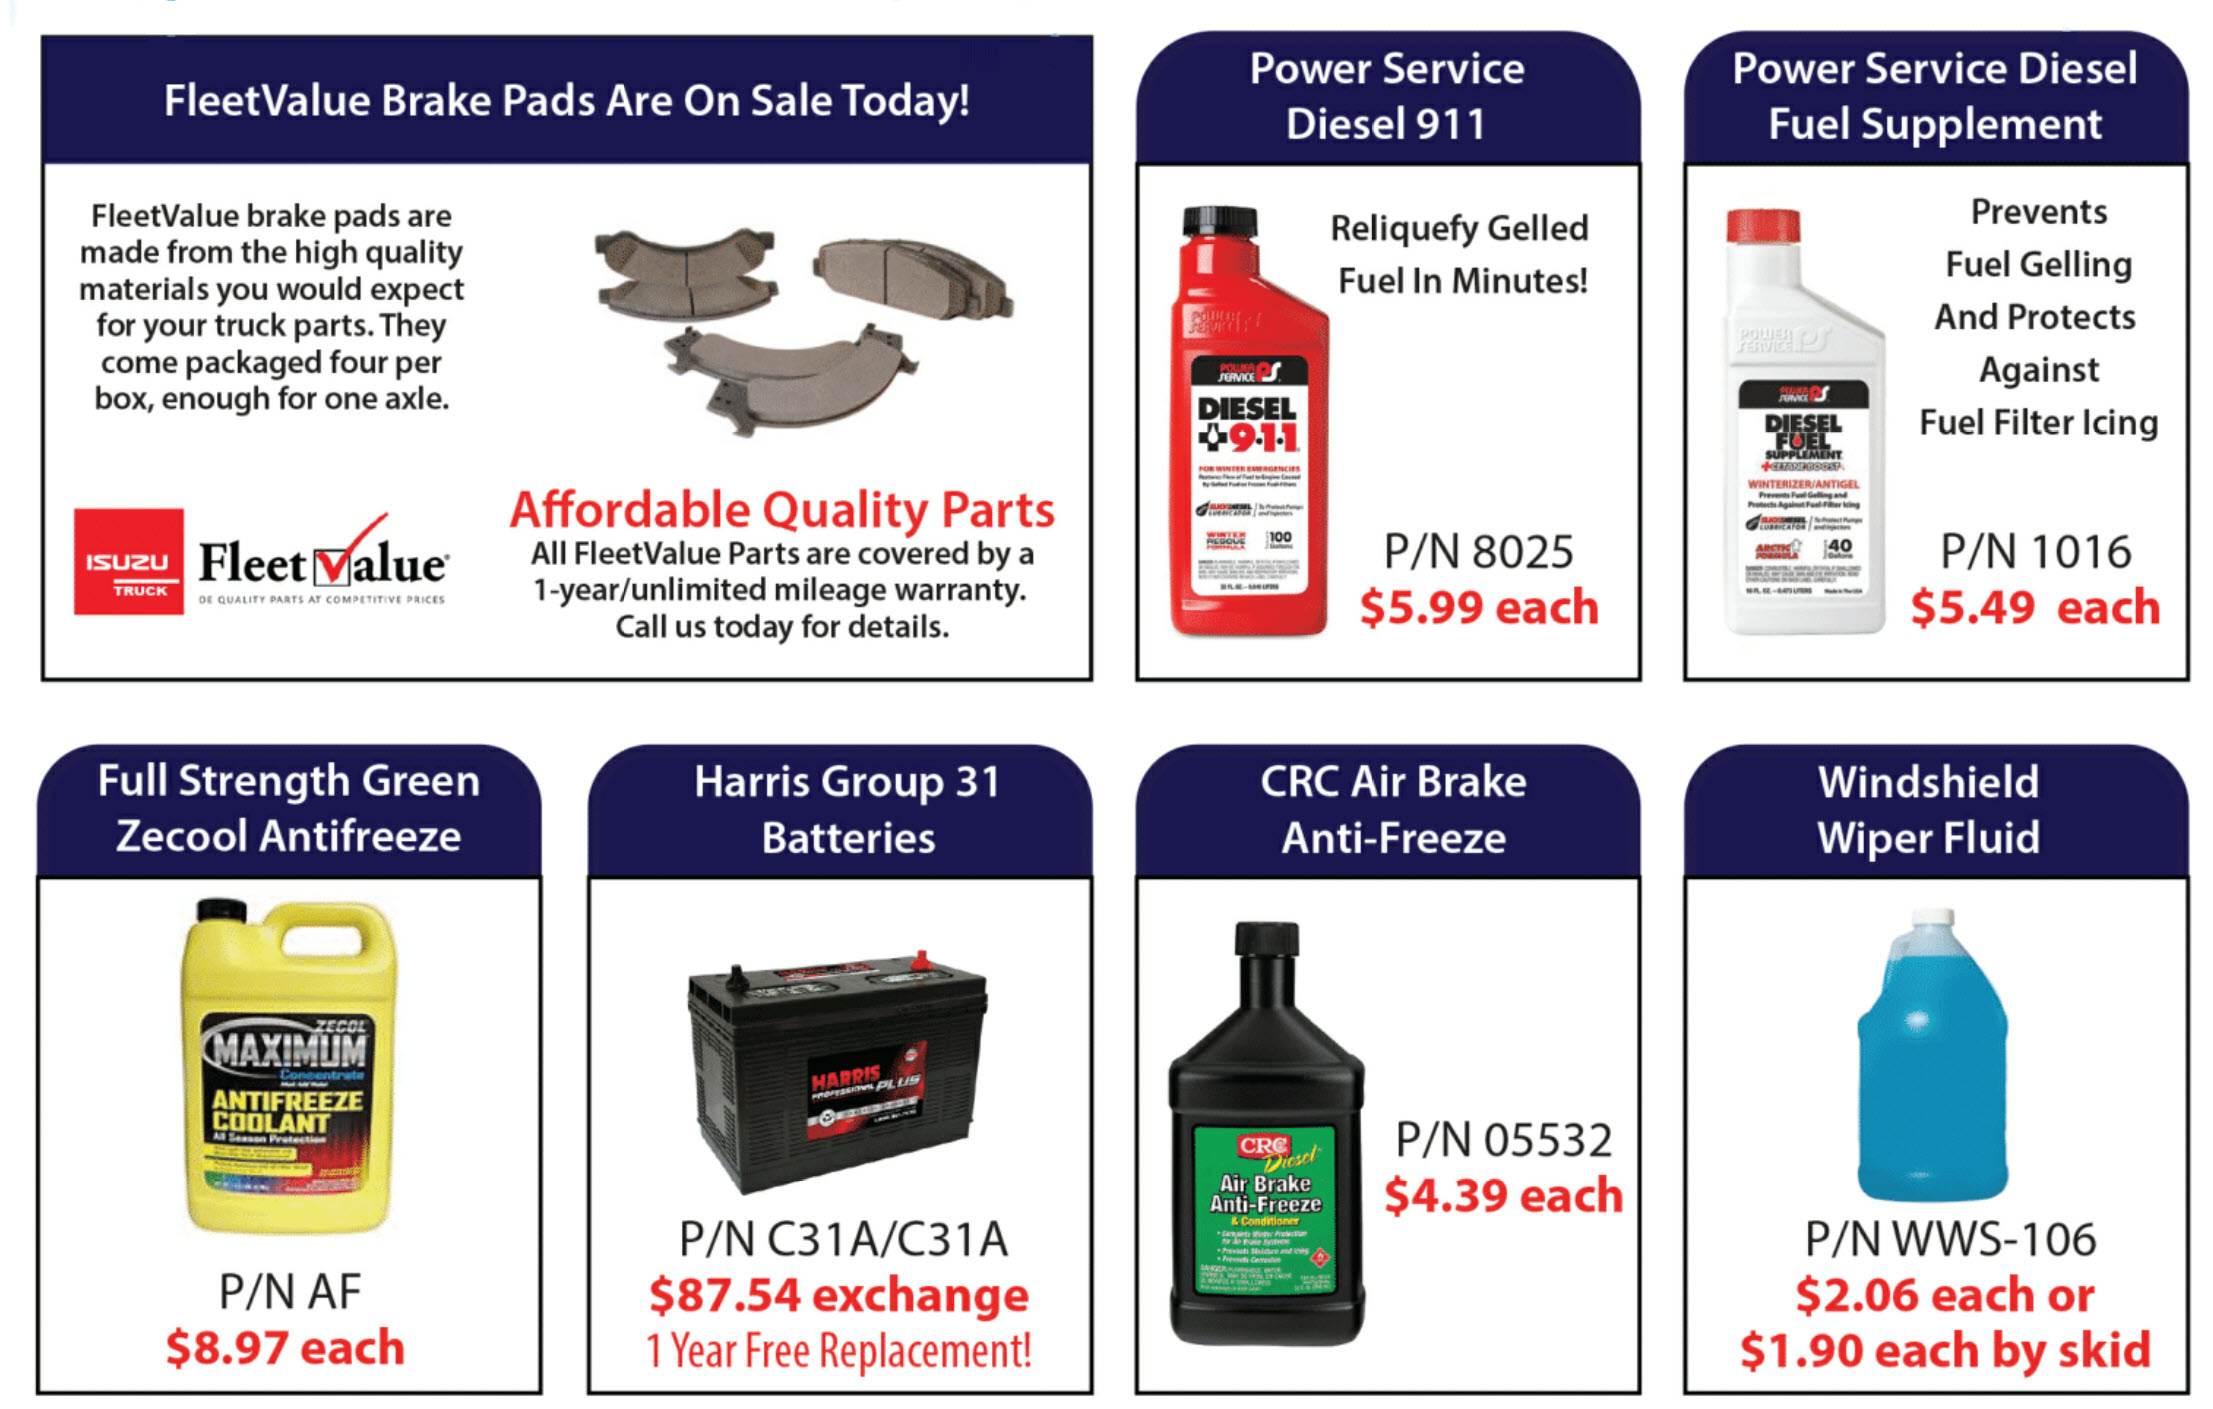 Dovell & Williams Winter Parts Offers 2019 – Glen Burnie, MD Location